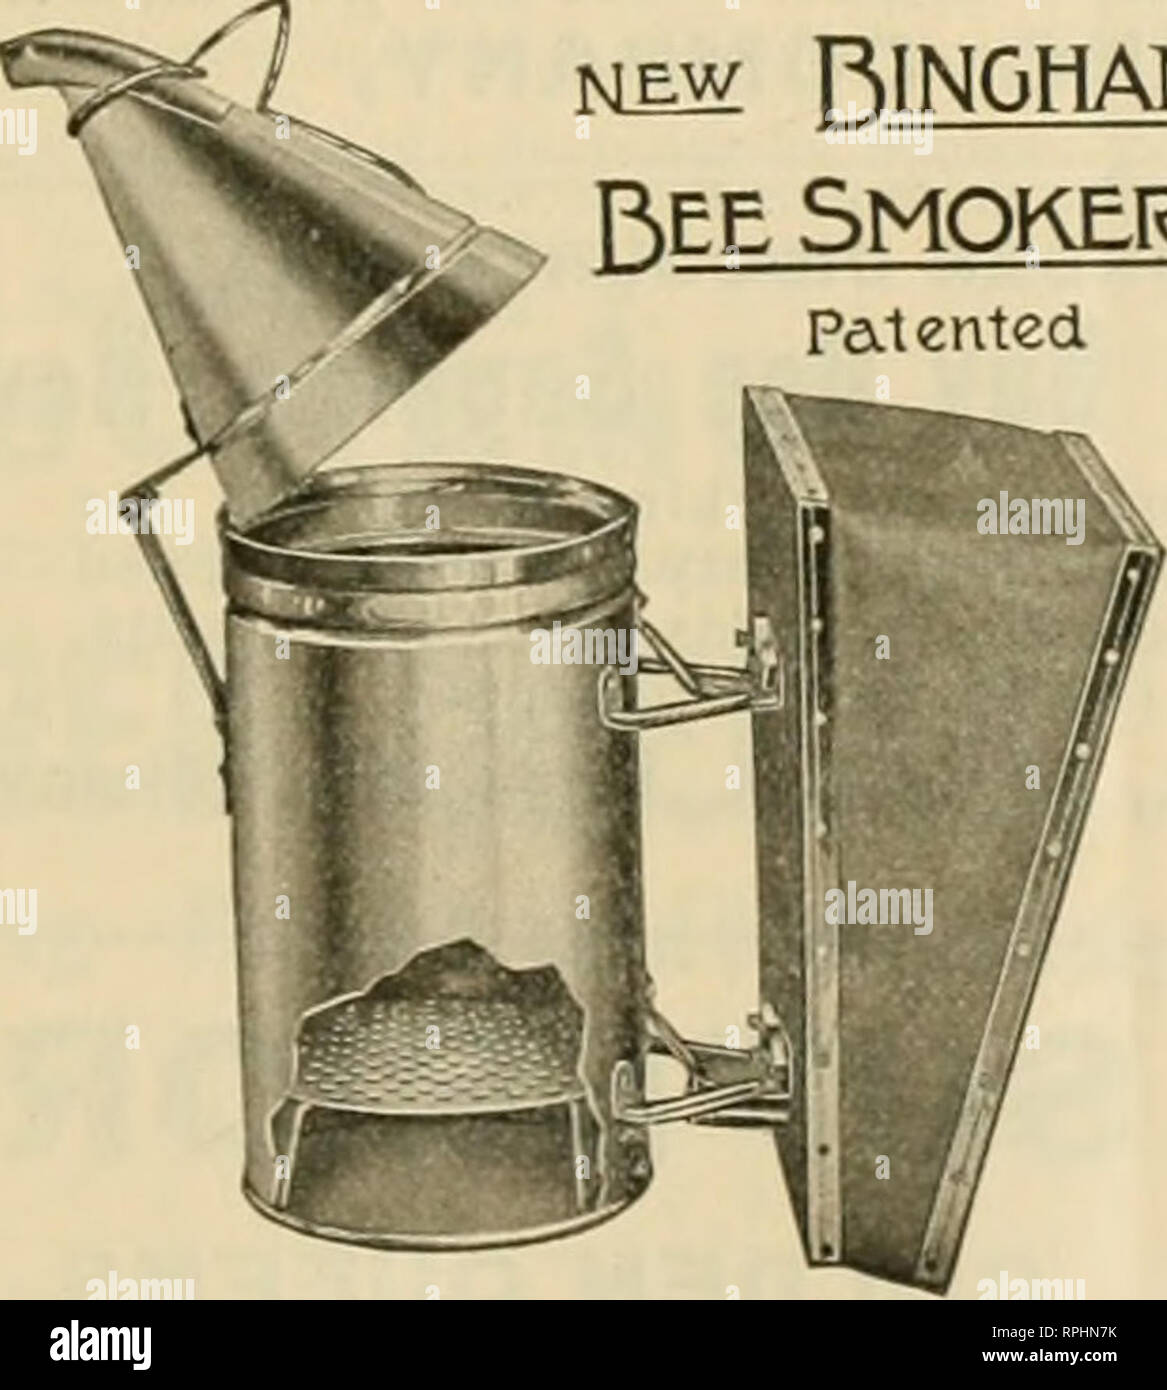 . American bee journal. Bee culture; Bees. MEW BINGHAM SMOKER. Patented. The New Bingham Bee-Smoker the all important tool of the mo?t ex- tensive honey-producers of the world. This illustration shows the remarkable steel-fire grate which such men as Mr. France, Mr. Rauchfuss, the Dadants and others say is the best on the mar- ket. The Smoke Engine grate has 381 holes for the air and draft, equal to an opening 2 inches square. Buy the large sizes and be pleased. For sale at your dealers or direct. Weight each. Smoke Engine 4inch stove. ...i'-'lbs. $1.25 Doctor 3!^-inch stove..1^8 ^ .85 Two lar - Stock Image